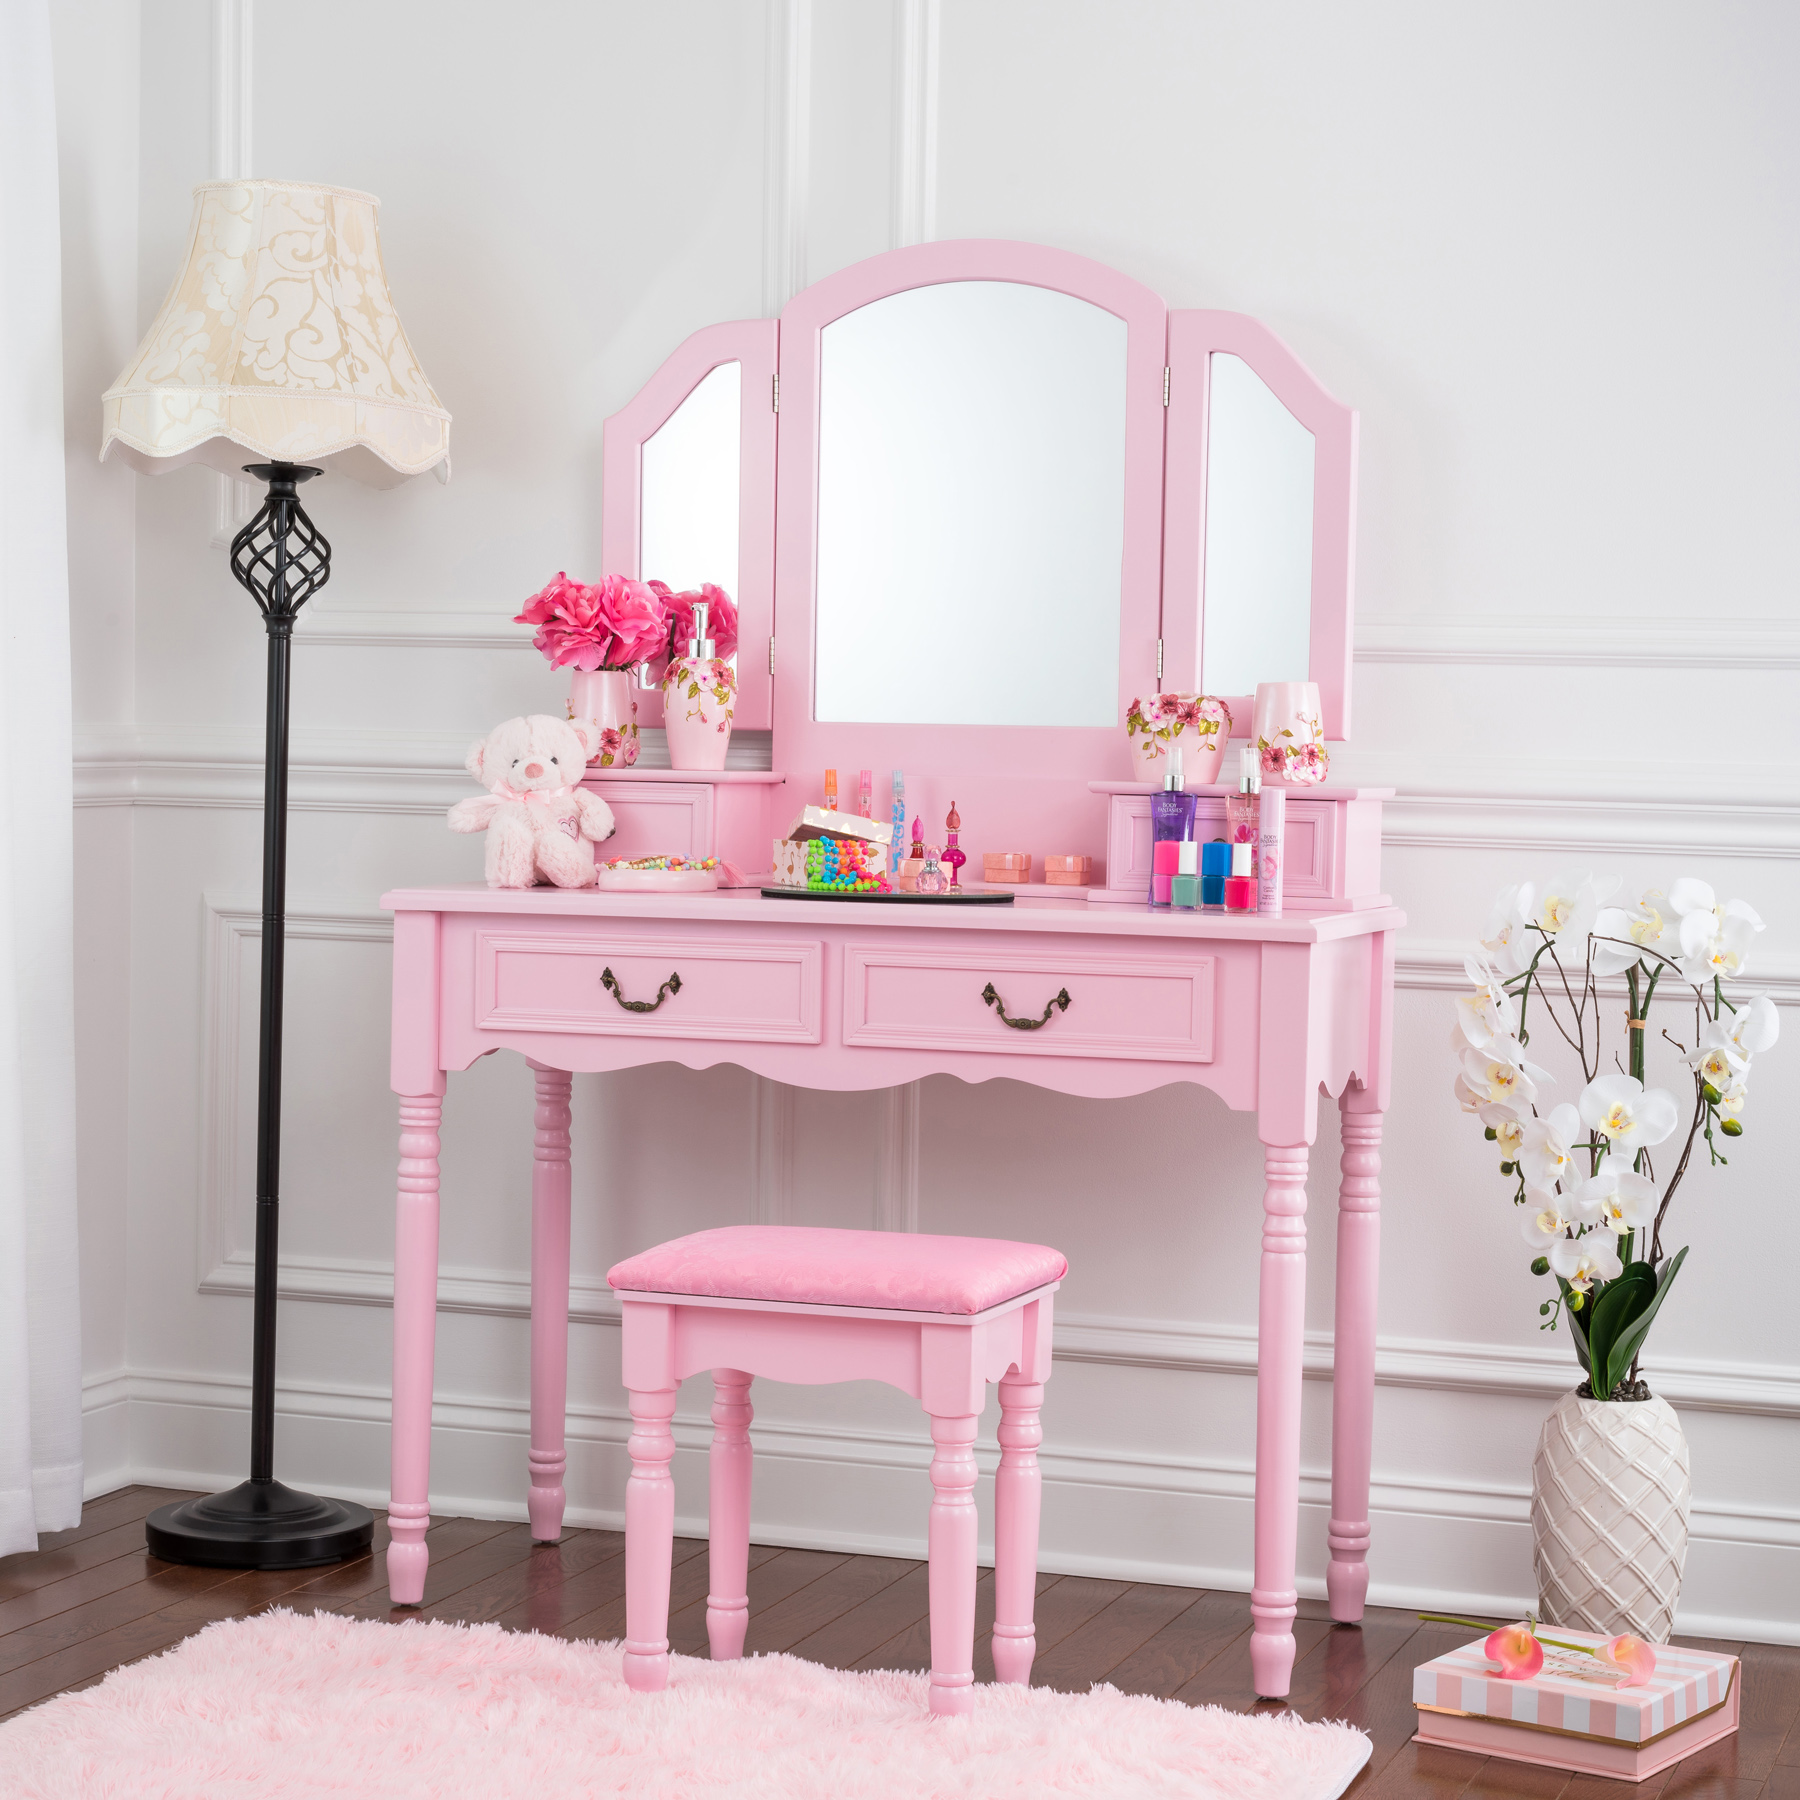 Fineboard Wooden Vanity Set, Dressing Table With 3 Mirrors